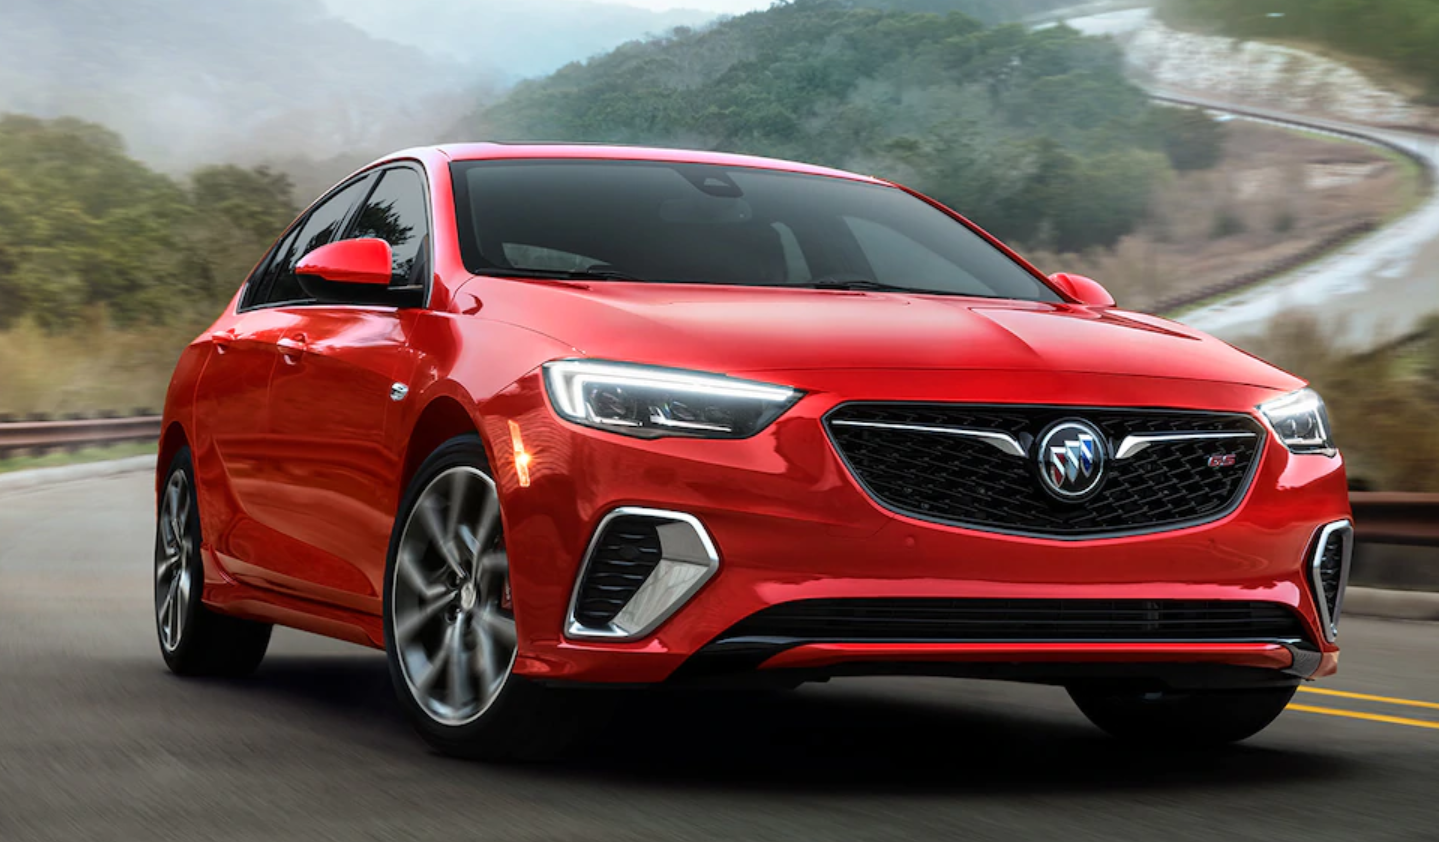 2019 Buick Regal Convertible Release Date Price Engine A Solitary Whilst In The Brand S Best Identified Nameplates Is Likely To Get There Entirely